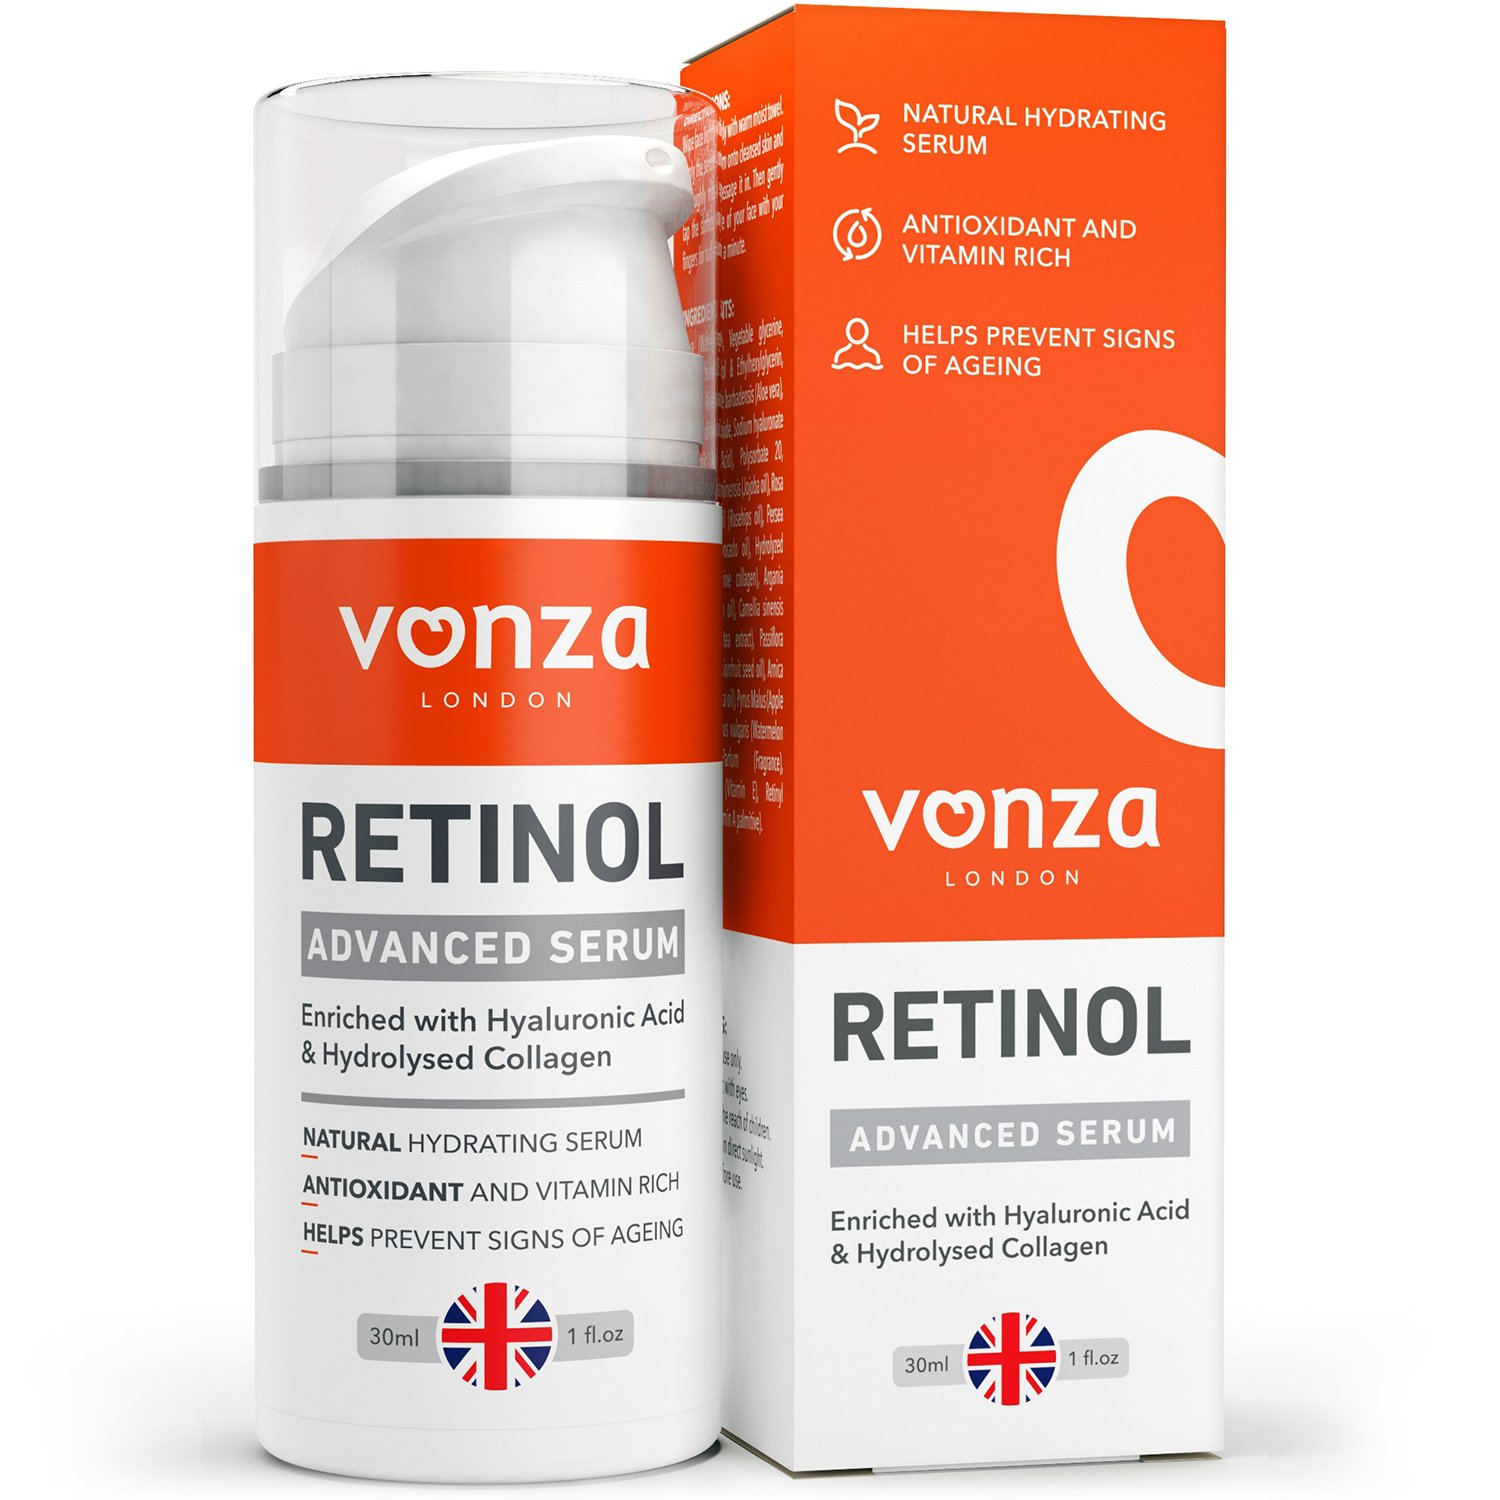 Anti-aging Retinol Face Serum with Hydrolysed Collagen & Hyaluronic Acid by Vonza - Fast-Acting Anti-Ageing Moisturiser and Retinol Serum Duo Delivers A Potent Mix of Antioxidants Working Synergistically to Visibly Improve the Appearance of Wrinkles,